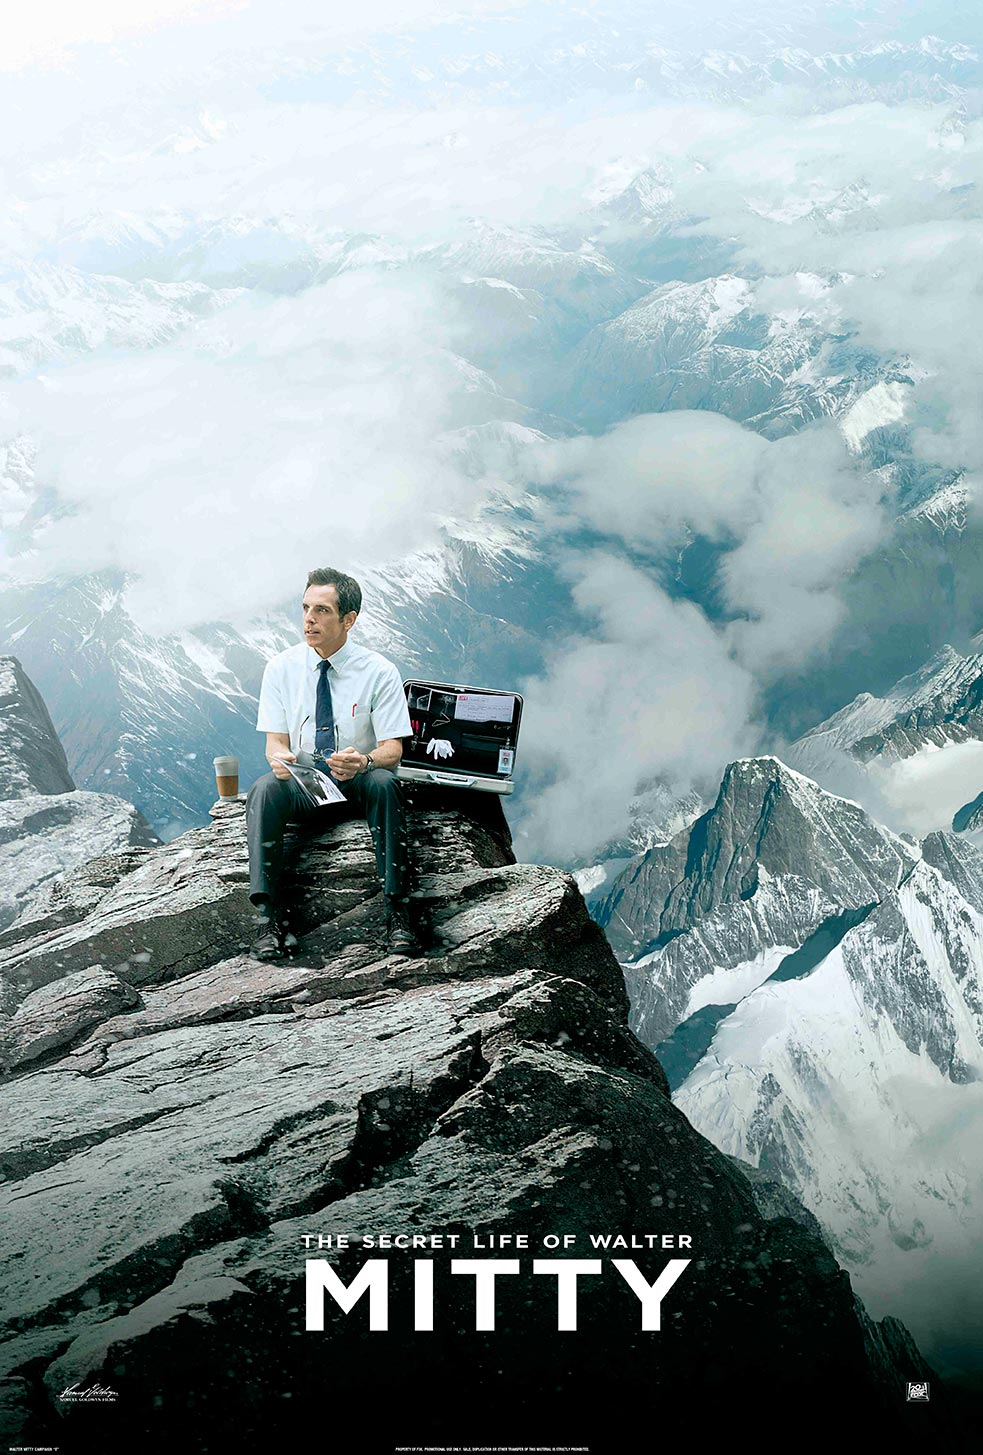 the-secret-life-of-walter-mitty-dvd-cover-26.jpg